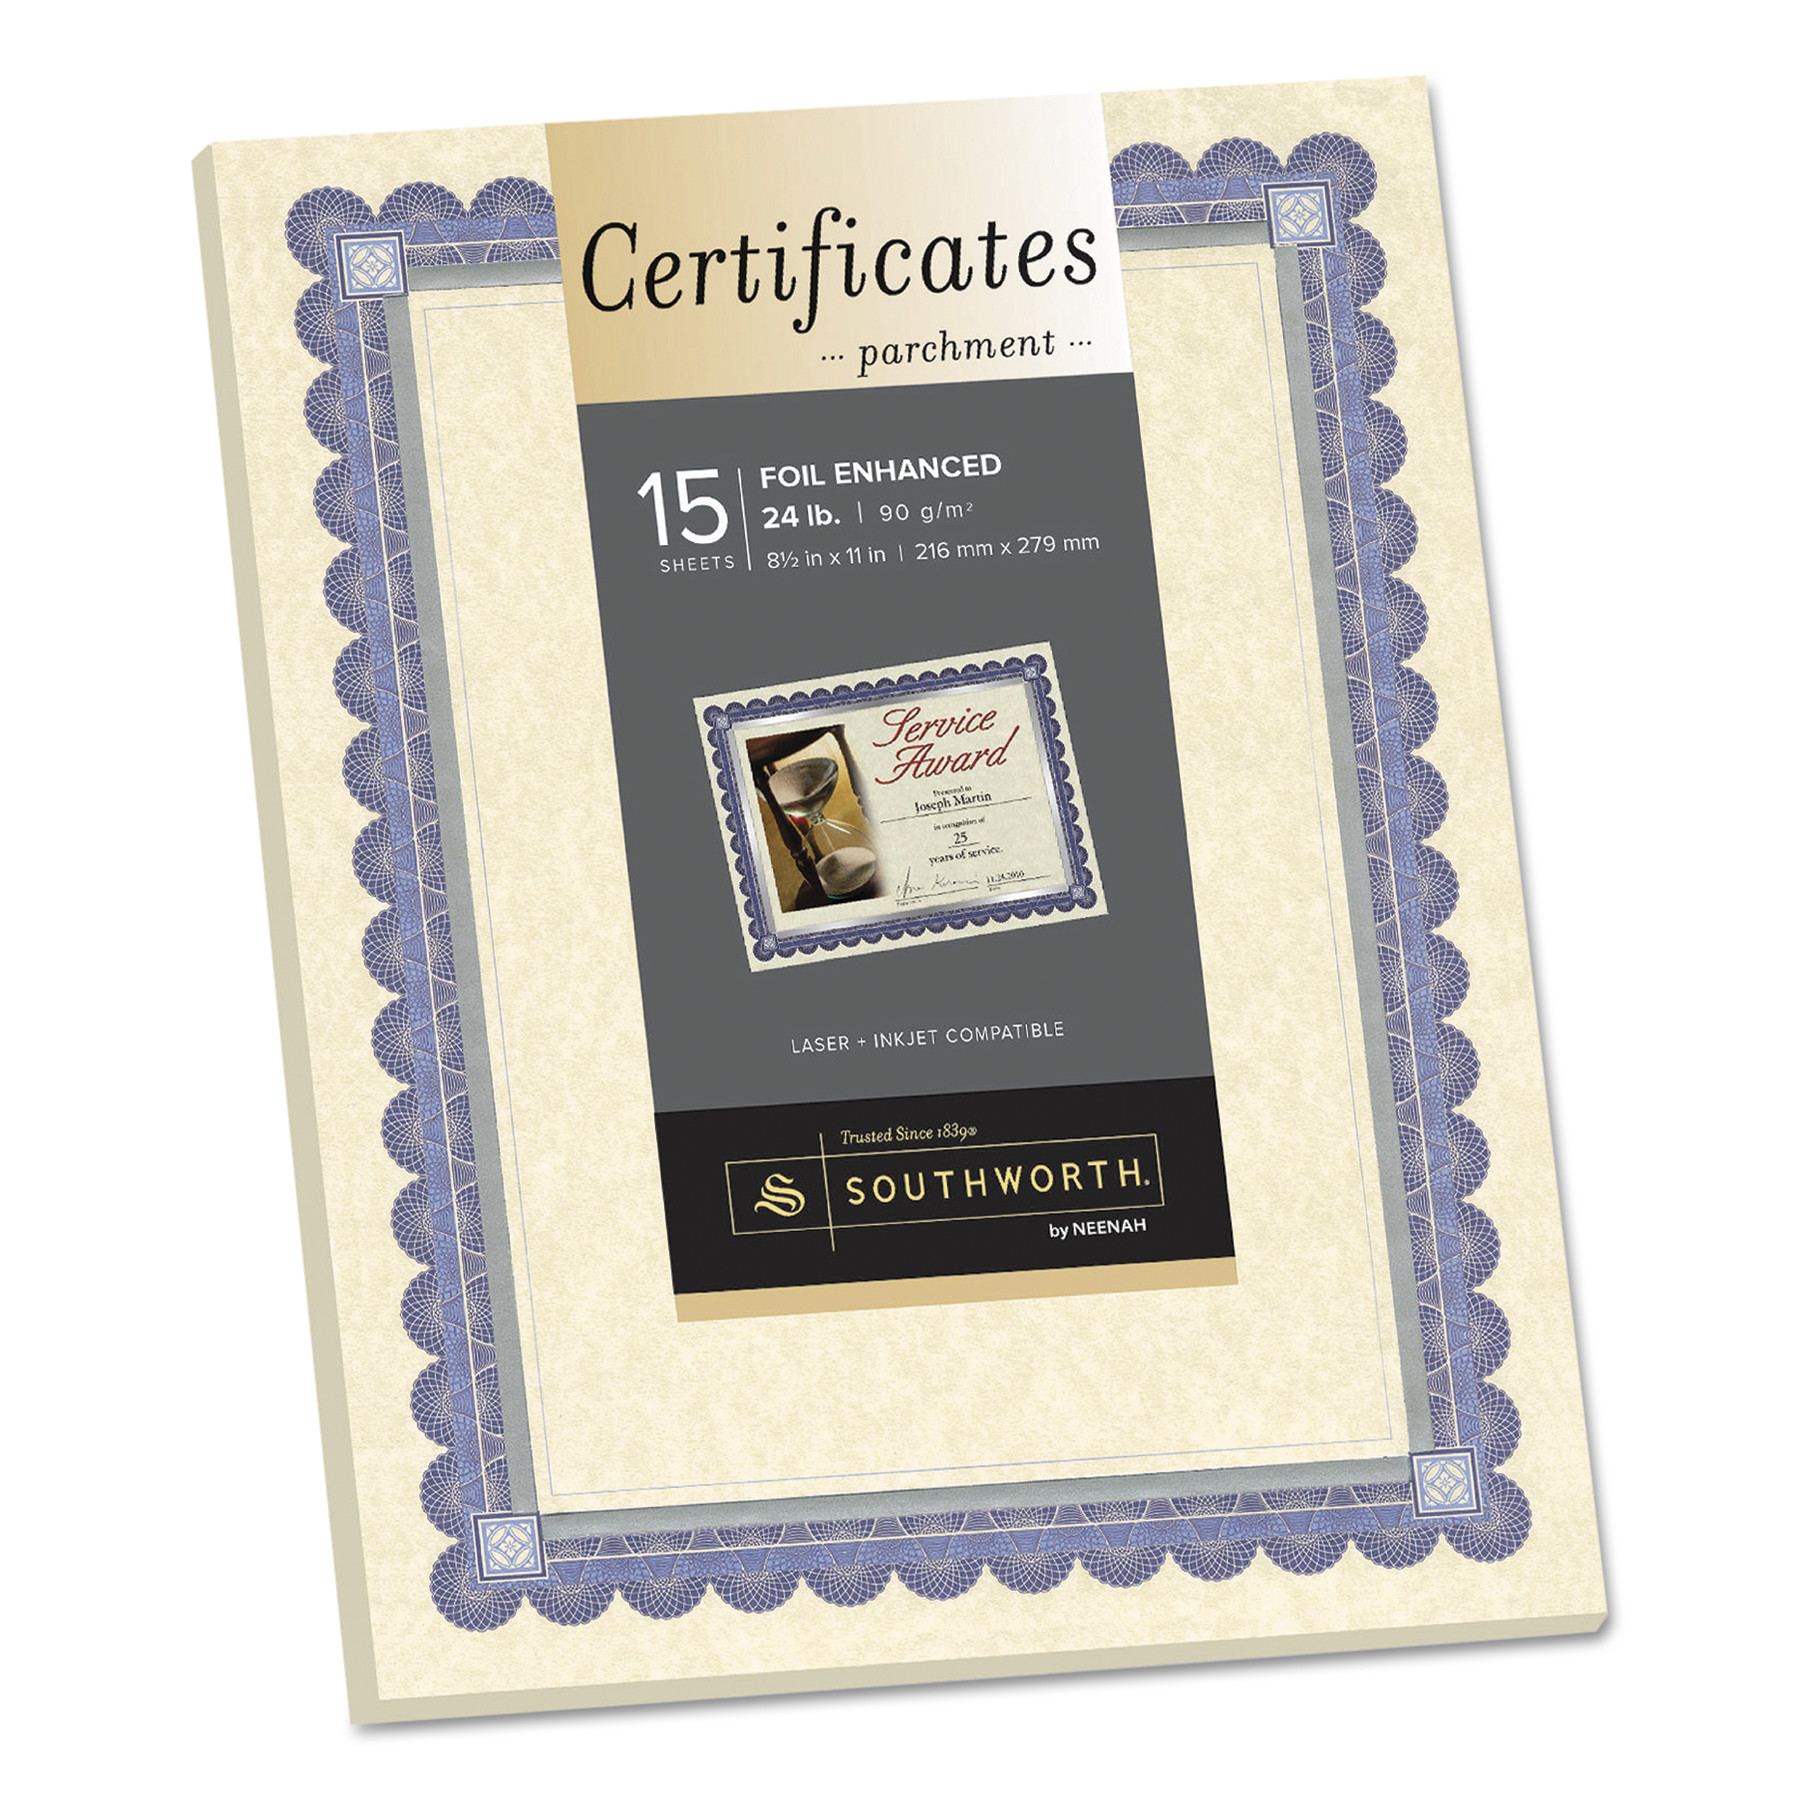 Southworth Foil-Enhanced Parchment Certificate, Ivory w/Blue/Silver Foil, 8 1/2 x 11, 15/PK